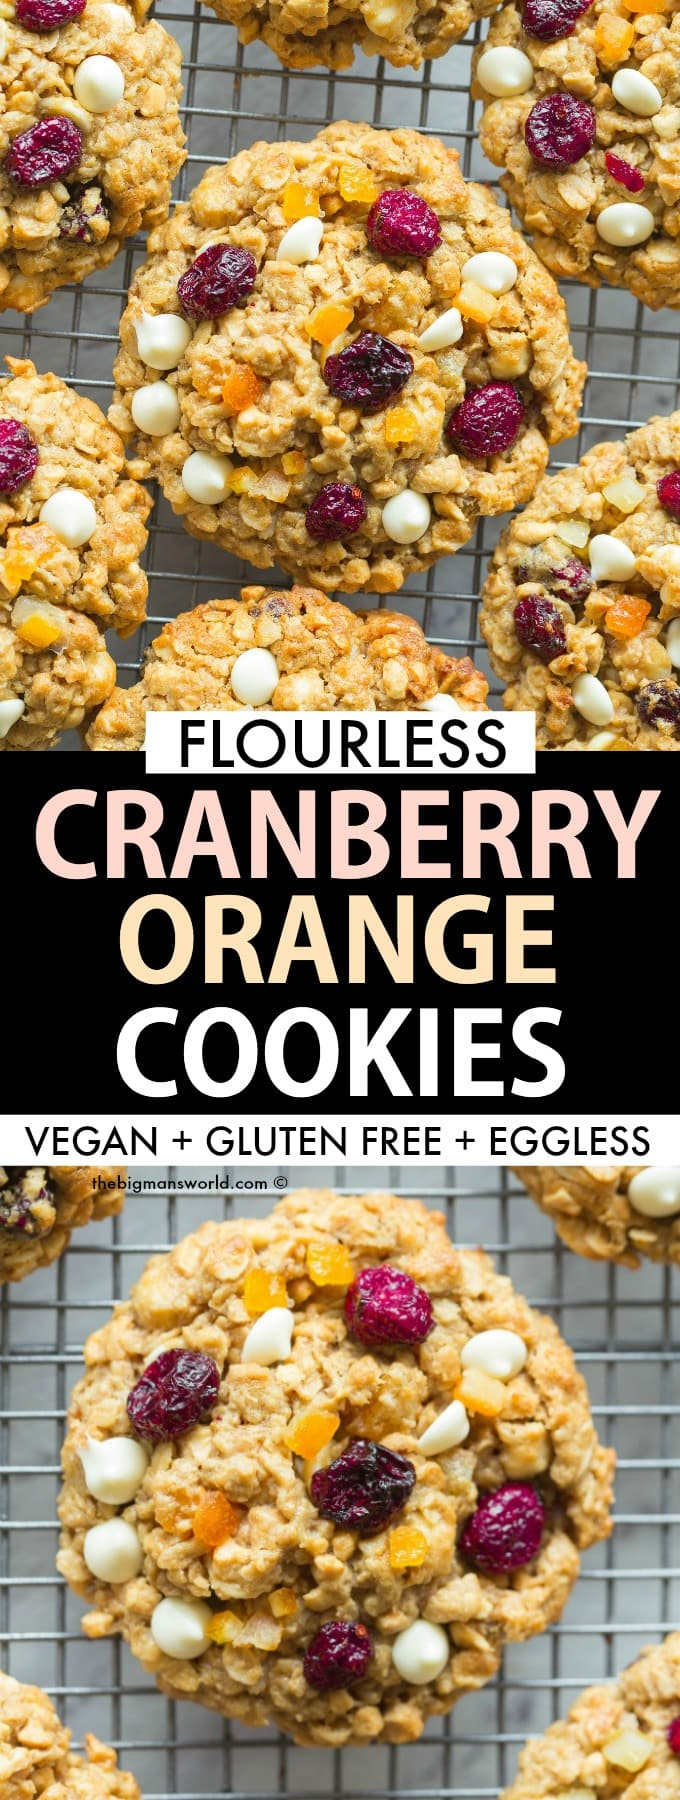 Healthy Flourless Oatmeal Cookies with cranberries and orange